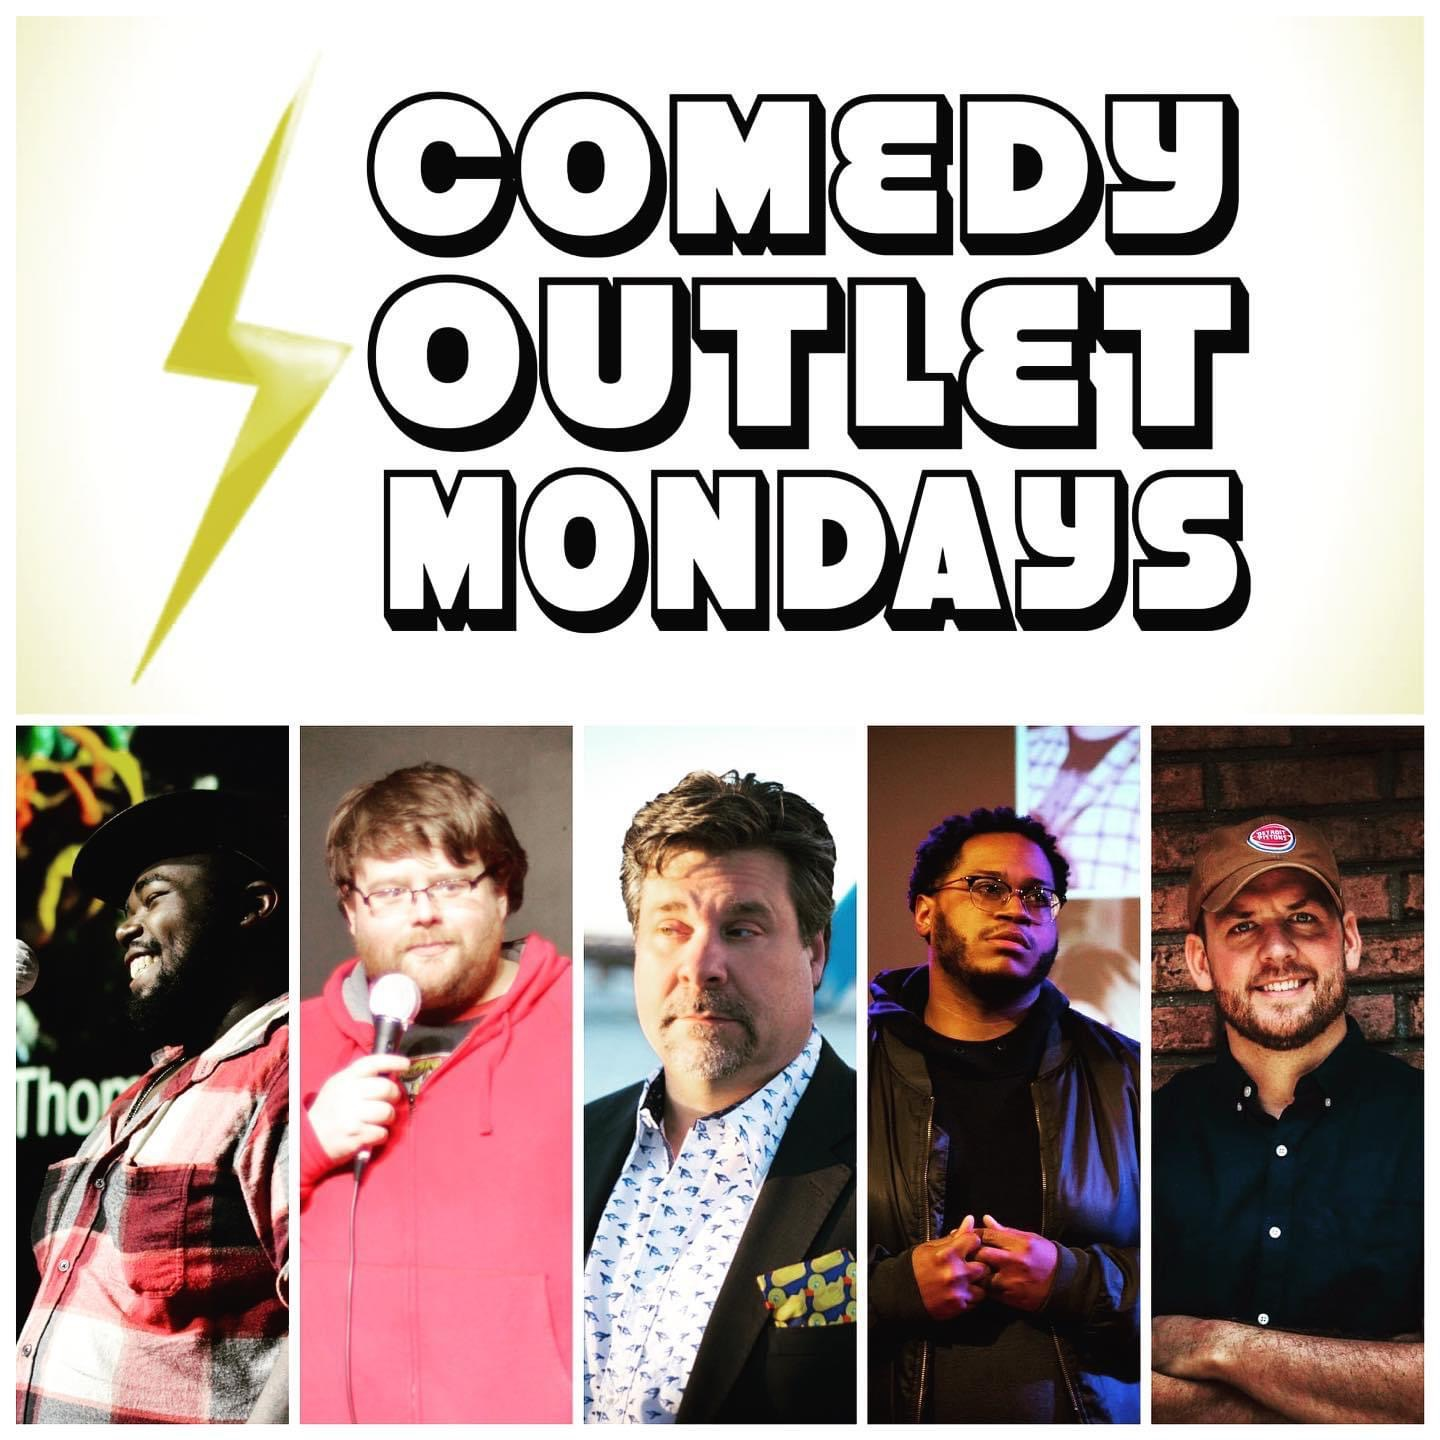 Brian Atkinson performs at Comedy Outlet Mondays